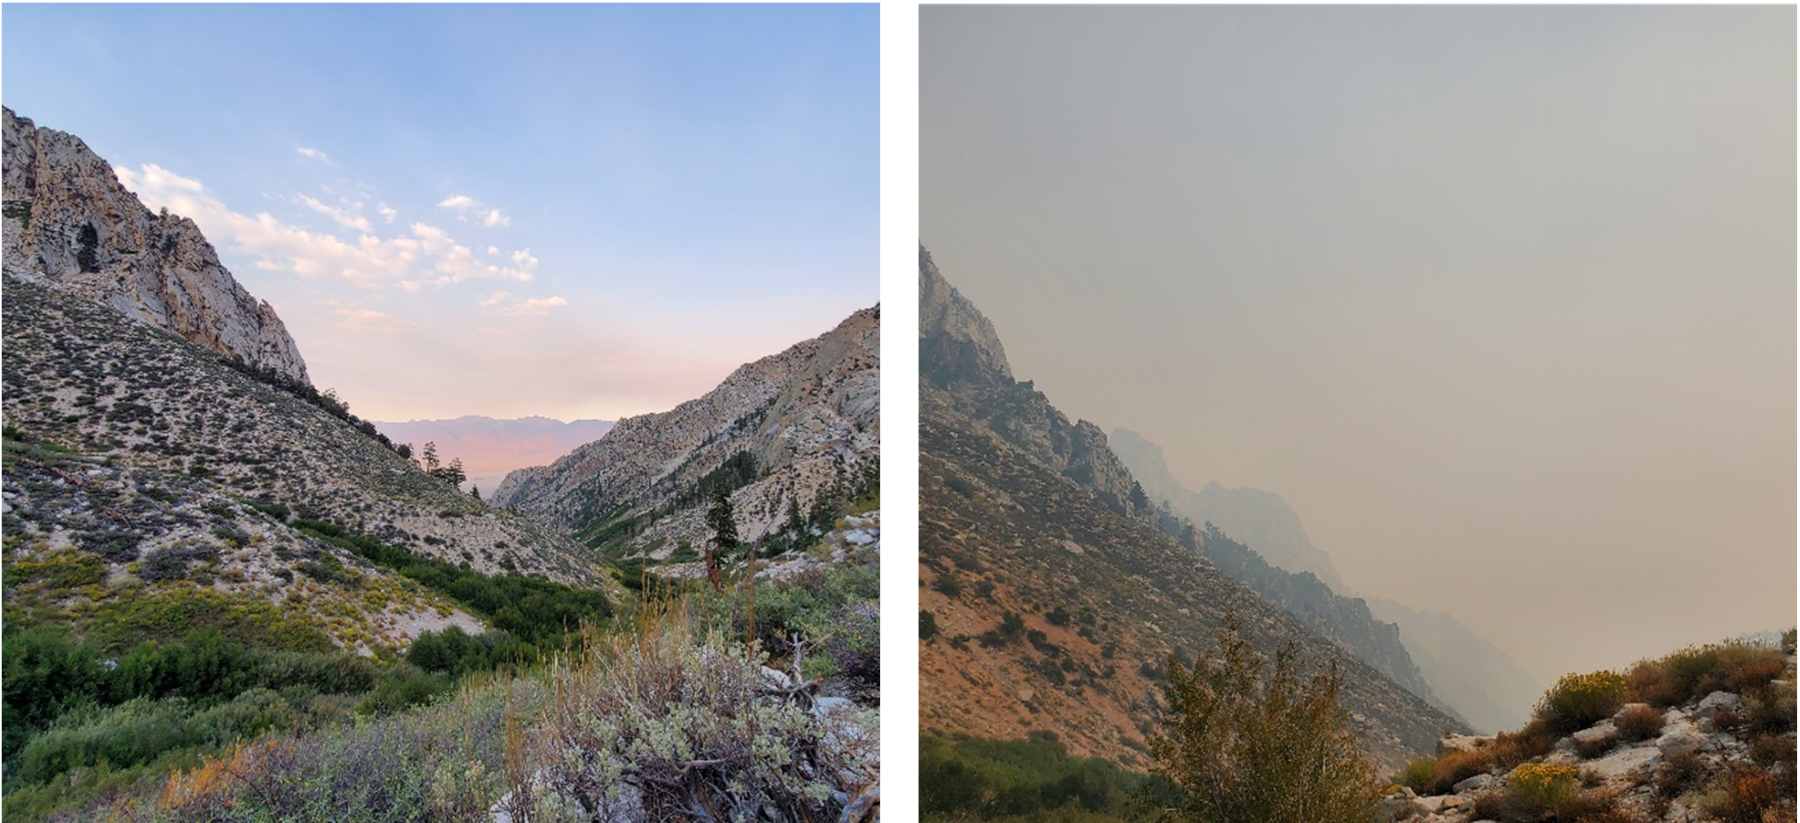 Two pictures of the same rocky, high desert view side-by-side. On the left, the sky is blue and clear. On the right the air is yellow with smoke, visibility is reduced, and the sky is grey.